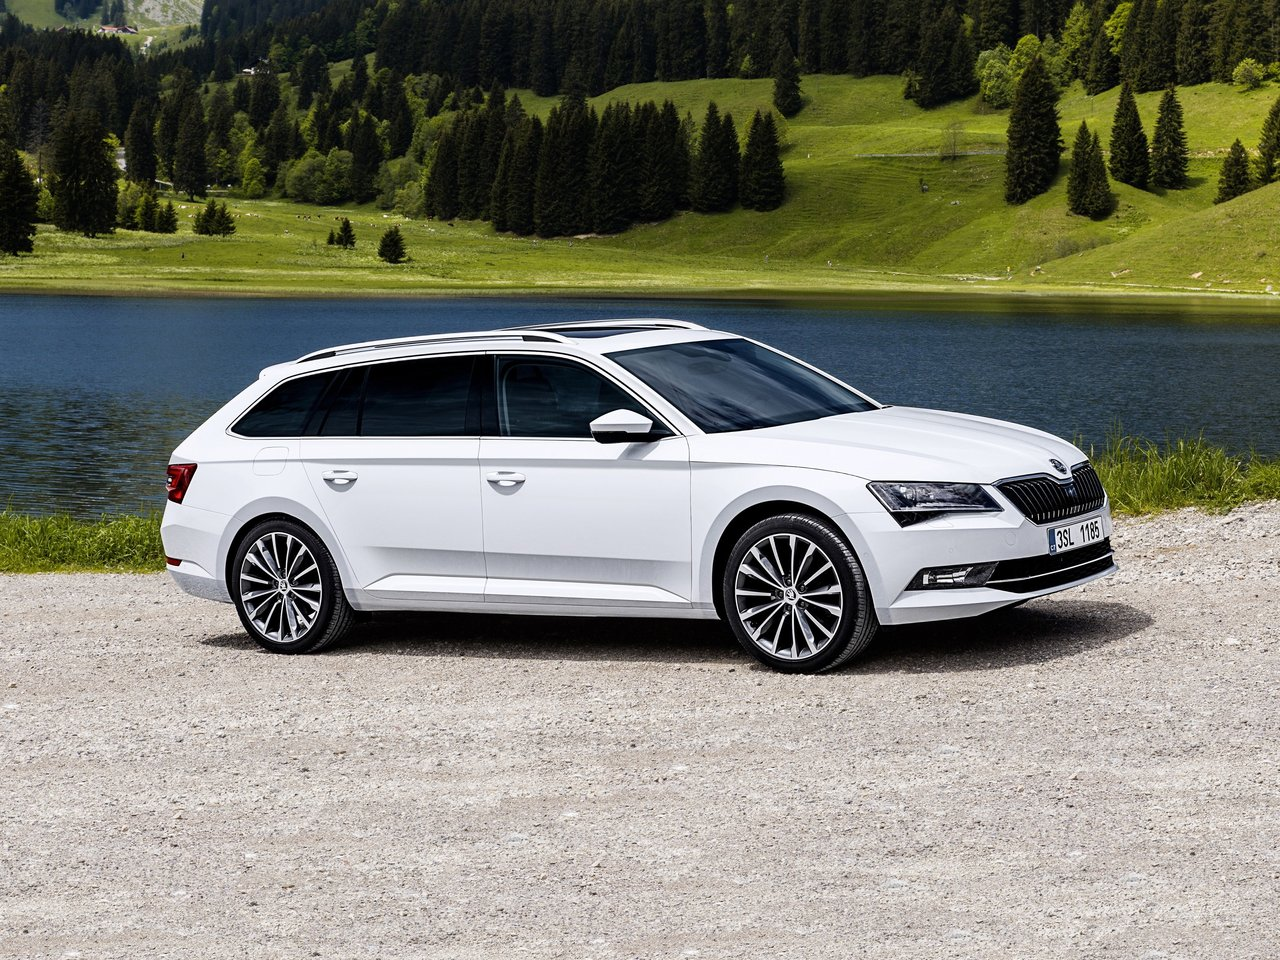 skoda superb iii combi 2 0 tsi 280 hp dsg 4x4. Black Bedroom Furniture Sets. Home Design Ideas